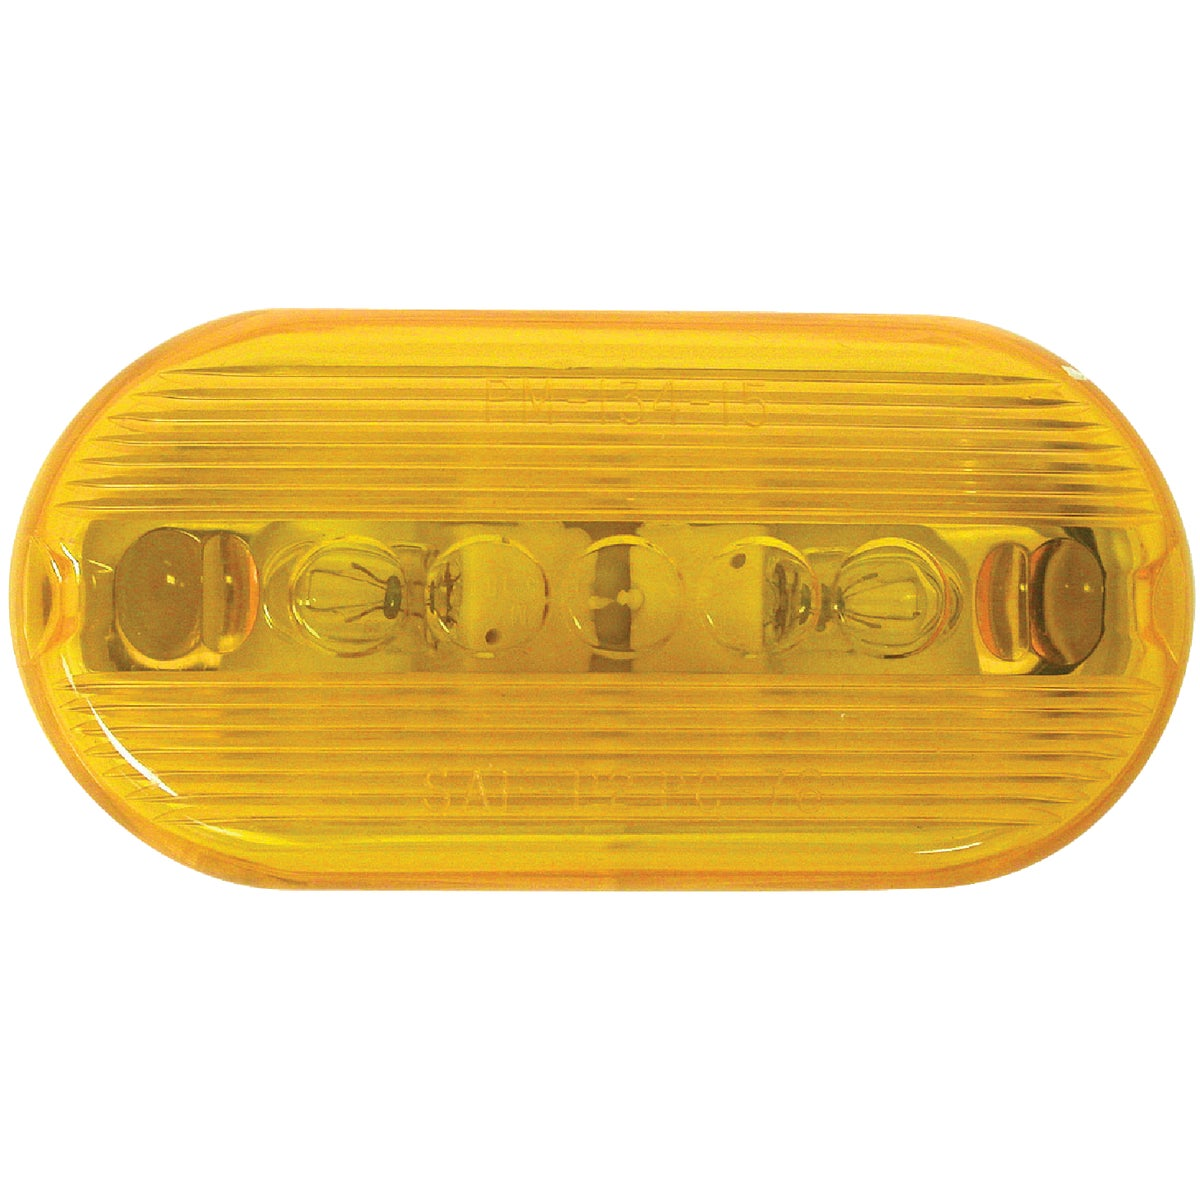 AMBER CLEARANCE LIGHT - V135A by Peterson Mfg Co